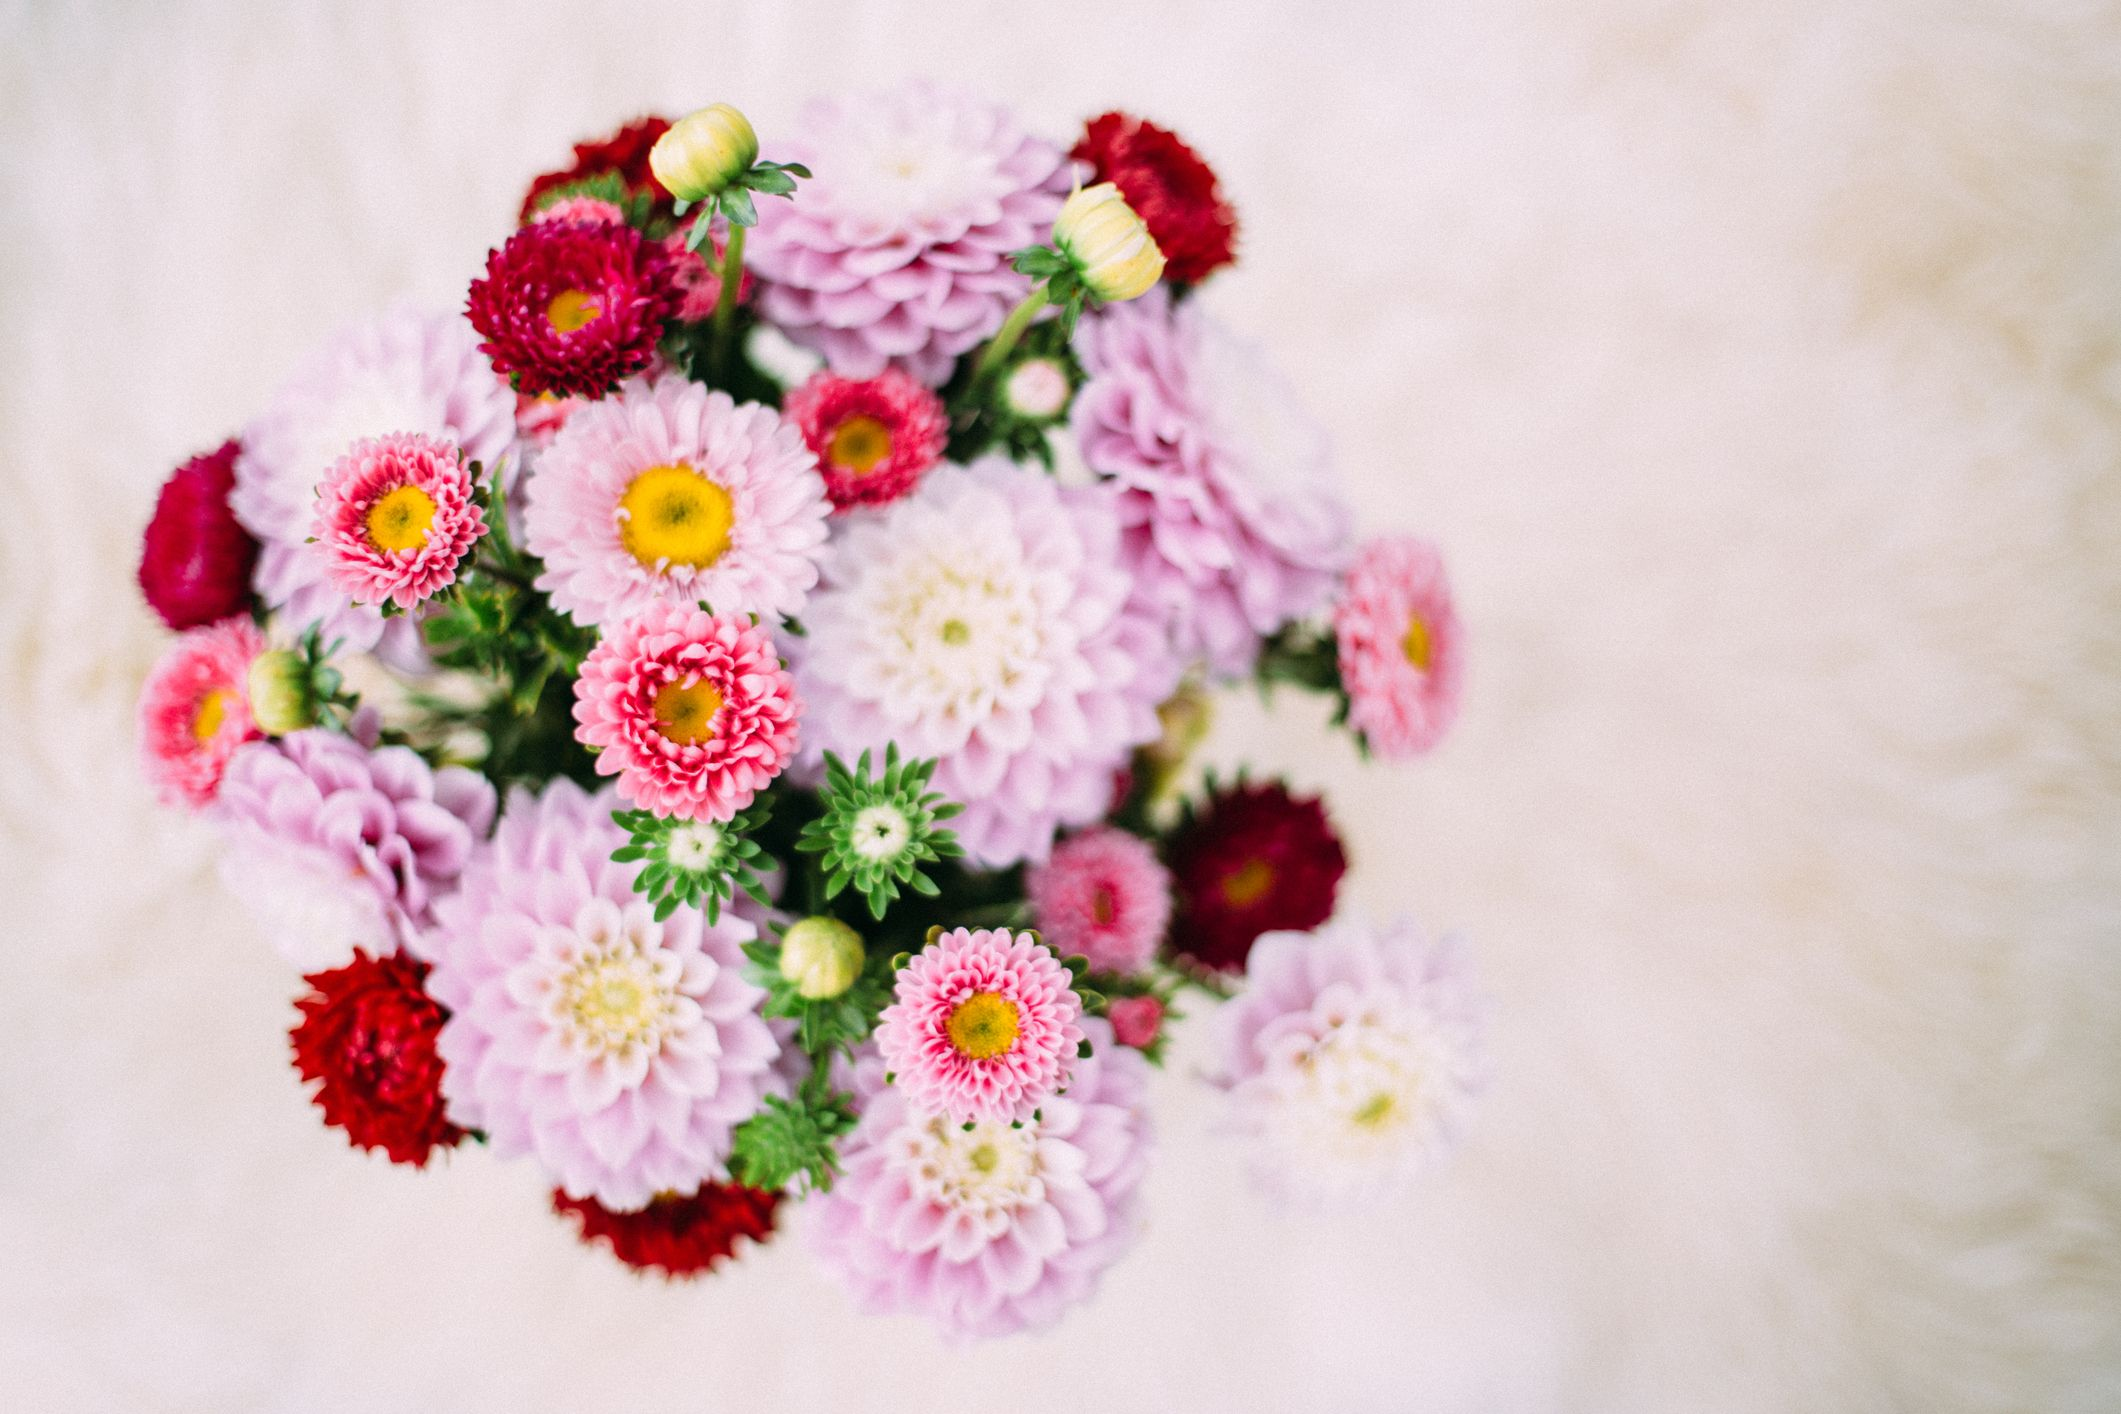 How to arrange flowers arranging flowers izmirmasajfo Image collections